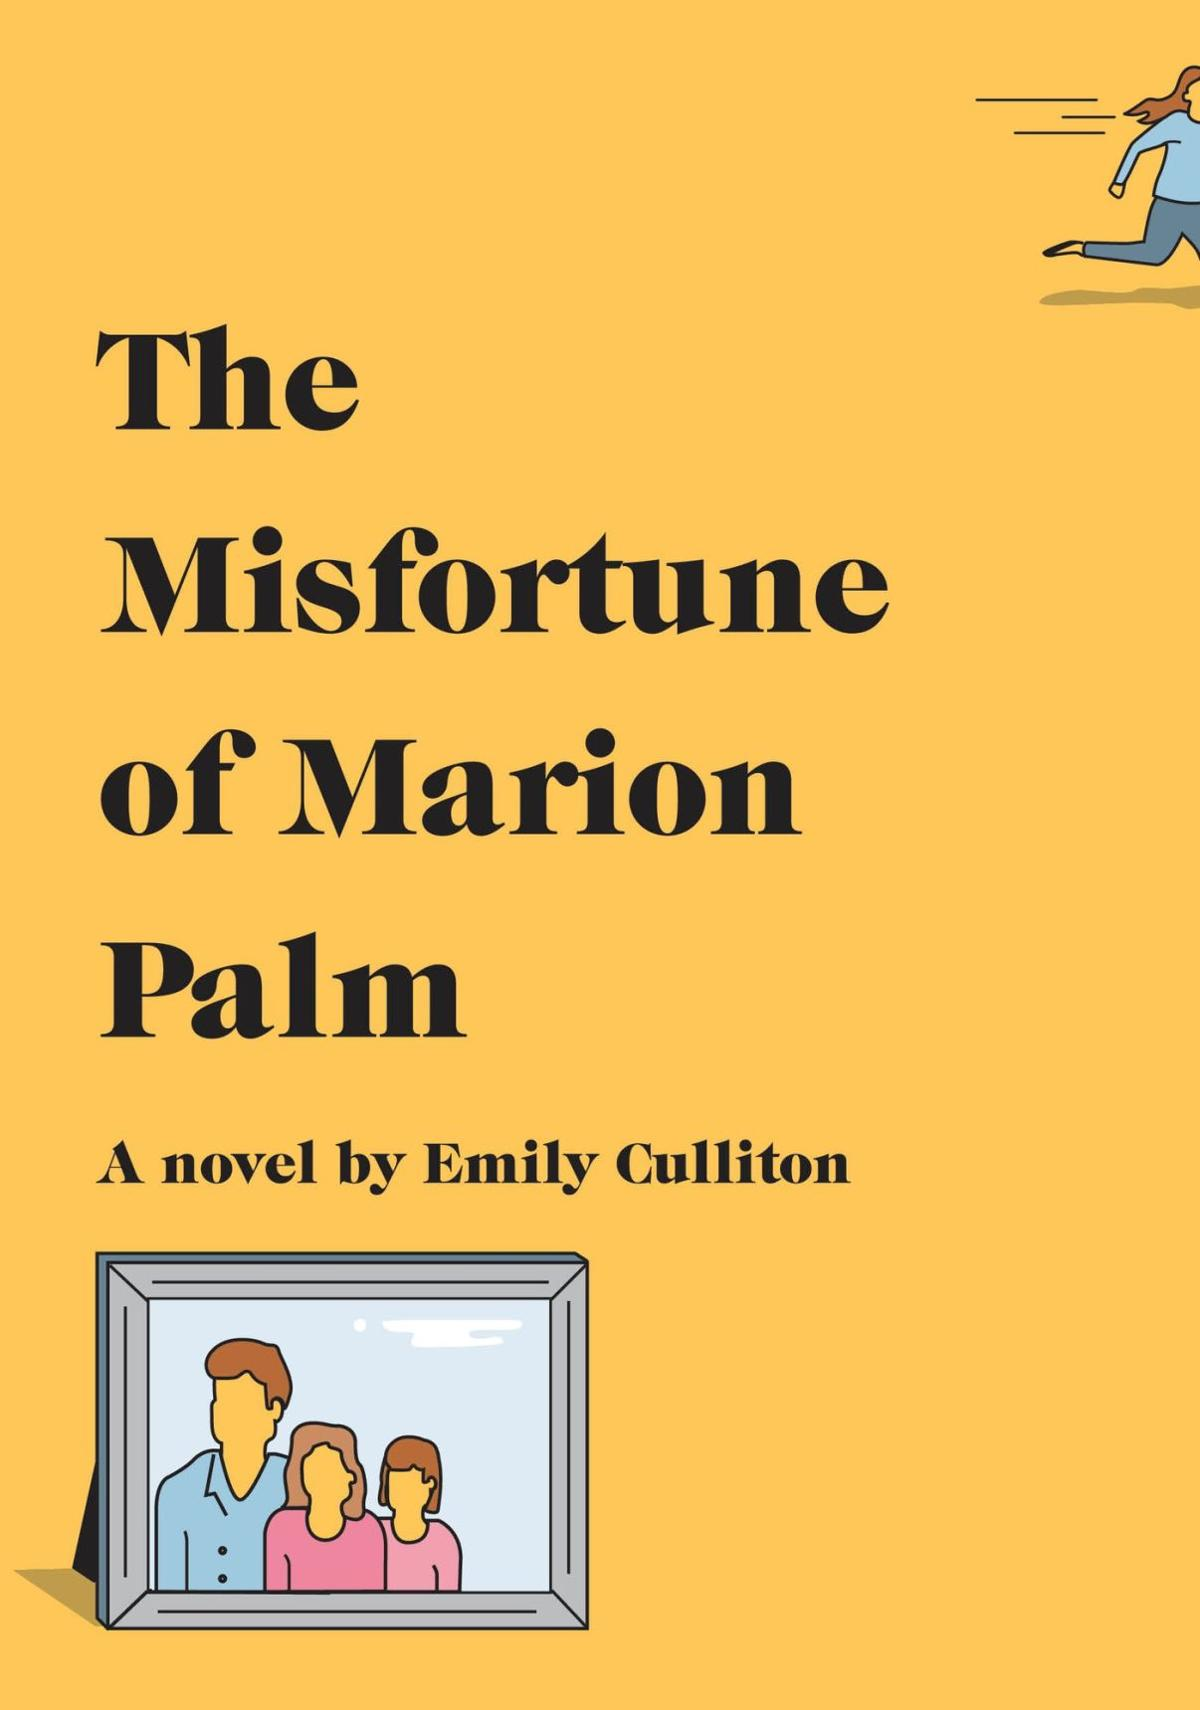 'The Misfortune of Marion Palm'